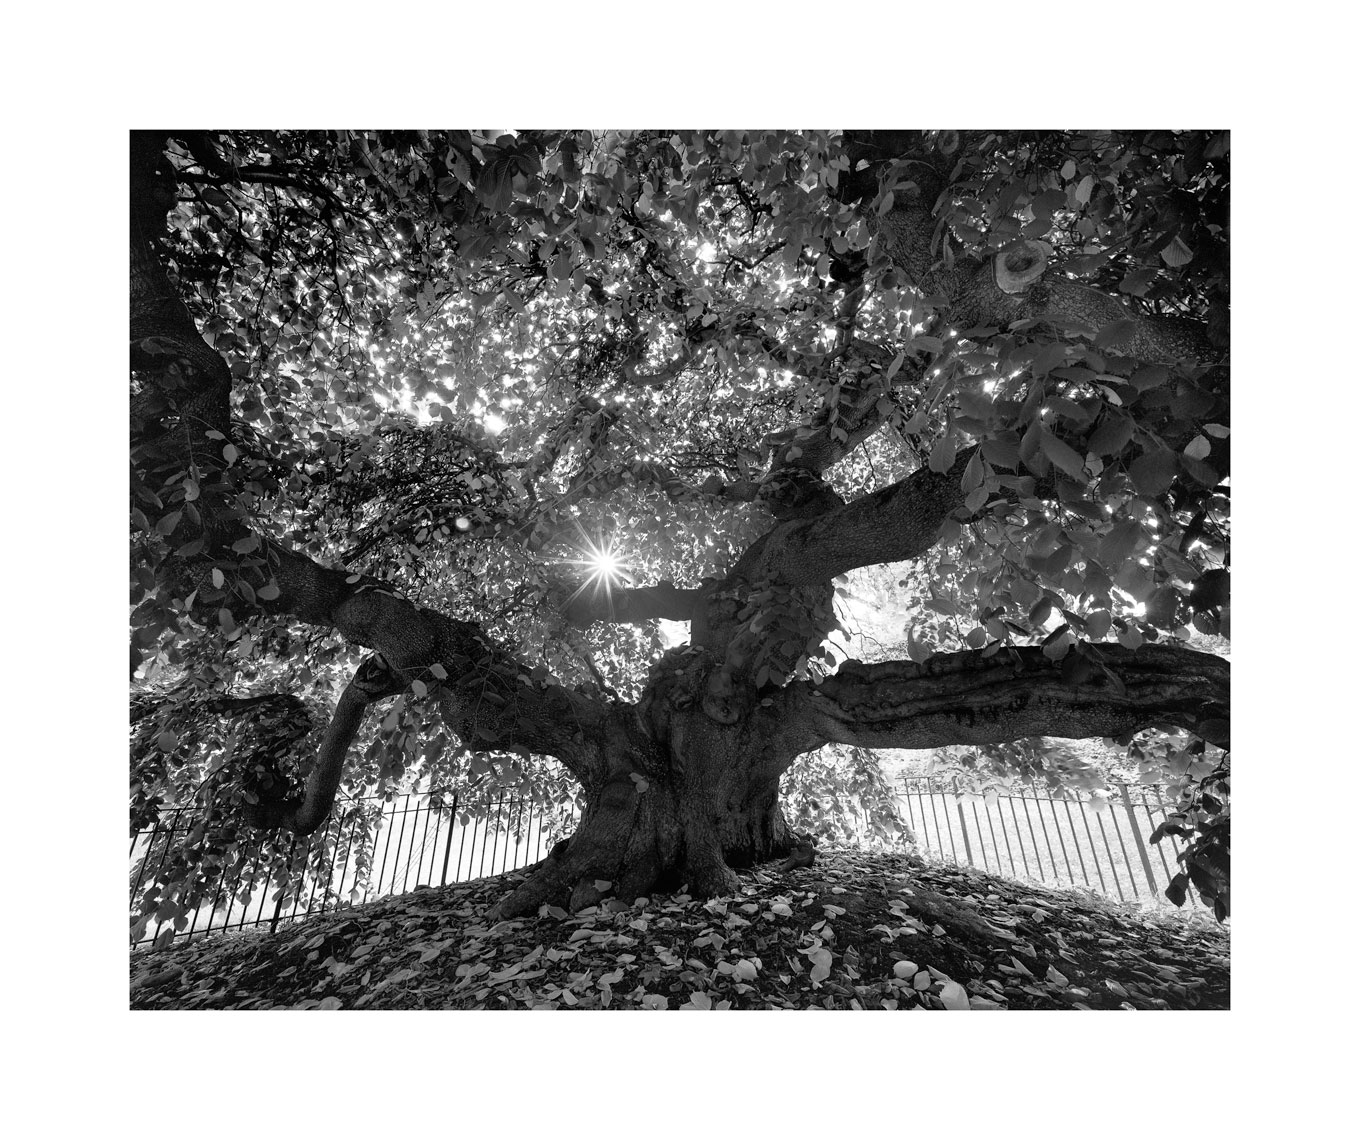 Camperdown-Elm-working-Edit-Edit-Edit.jpg